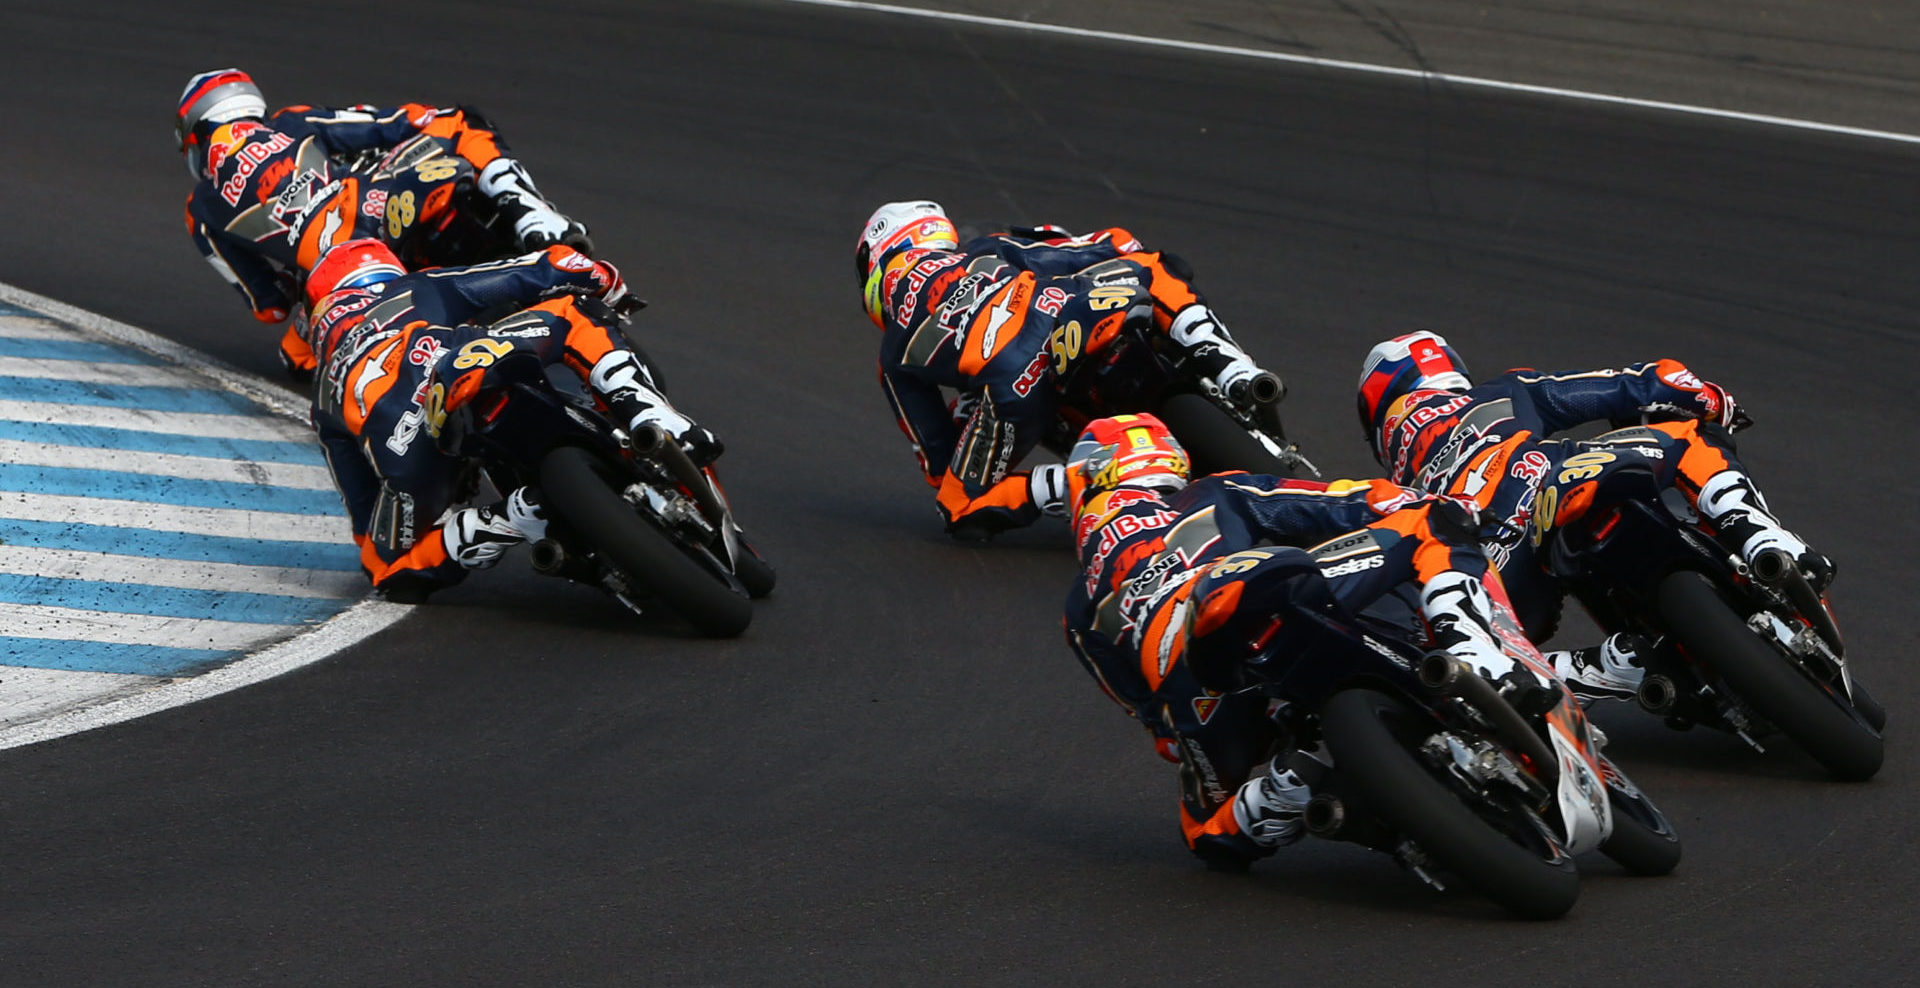 Red Bull Motogp Rookies Cup 2020 Schedule Released Roadracing World Magazine Motorcycle Riding Racing Tech News